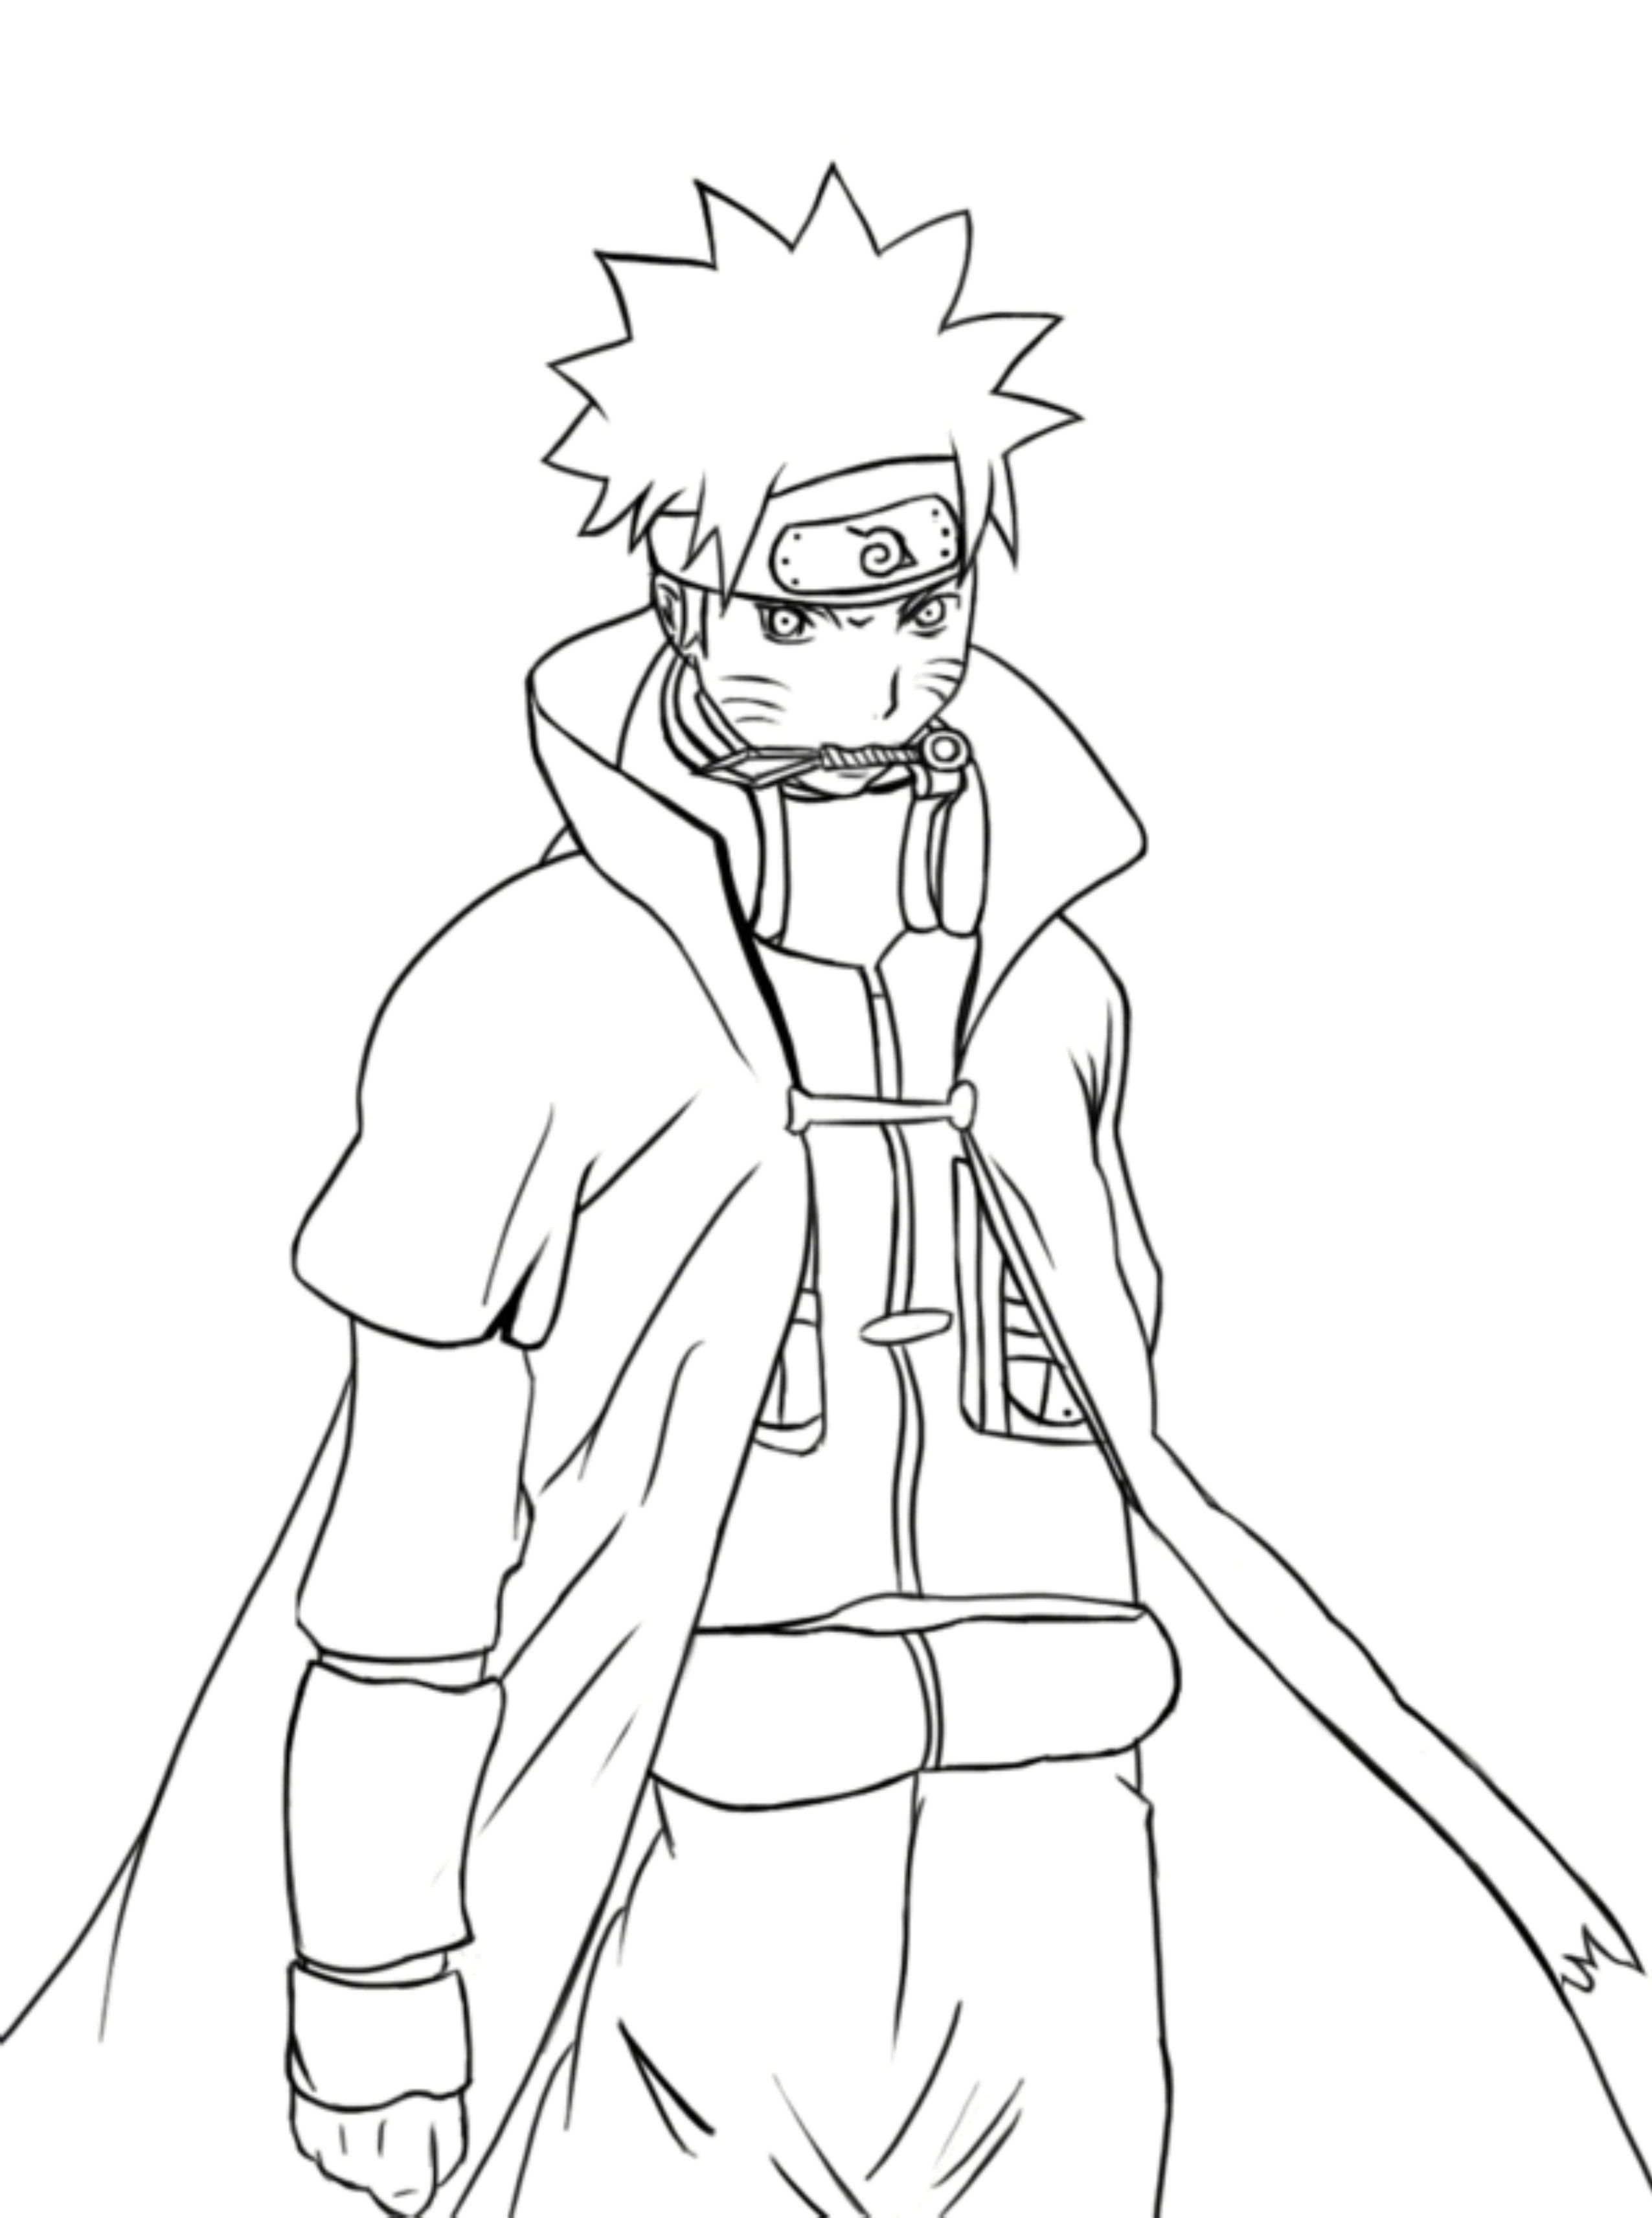 Anime Naruto Coloring Pages Naruto With Sasuke Anime Coloring Pages For Kids New Squad 7 And